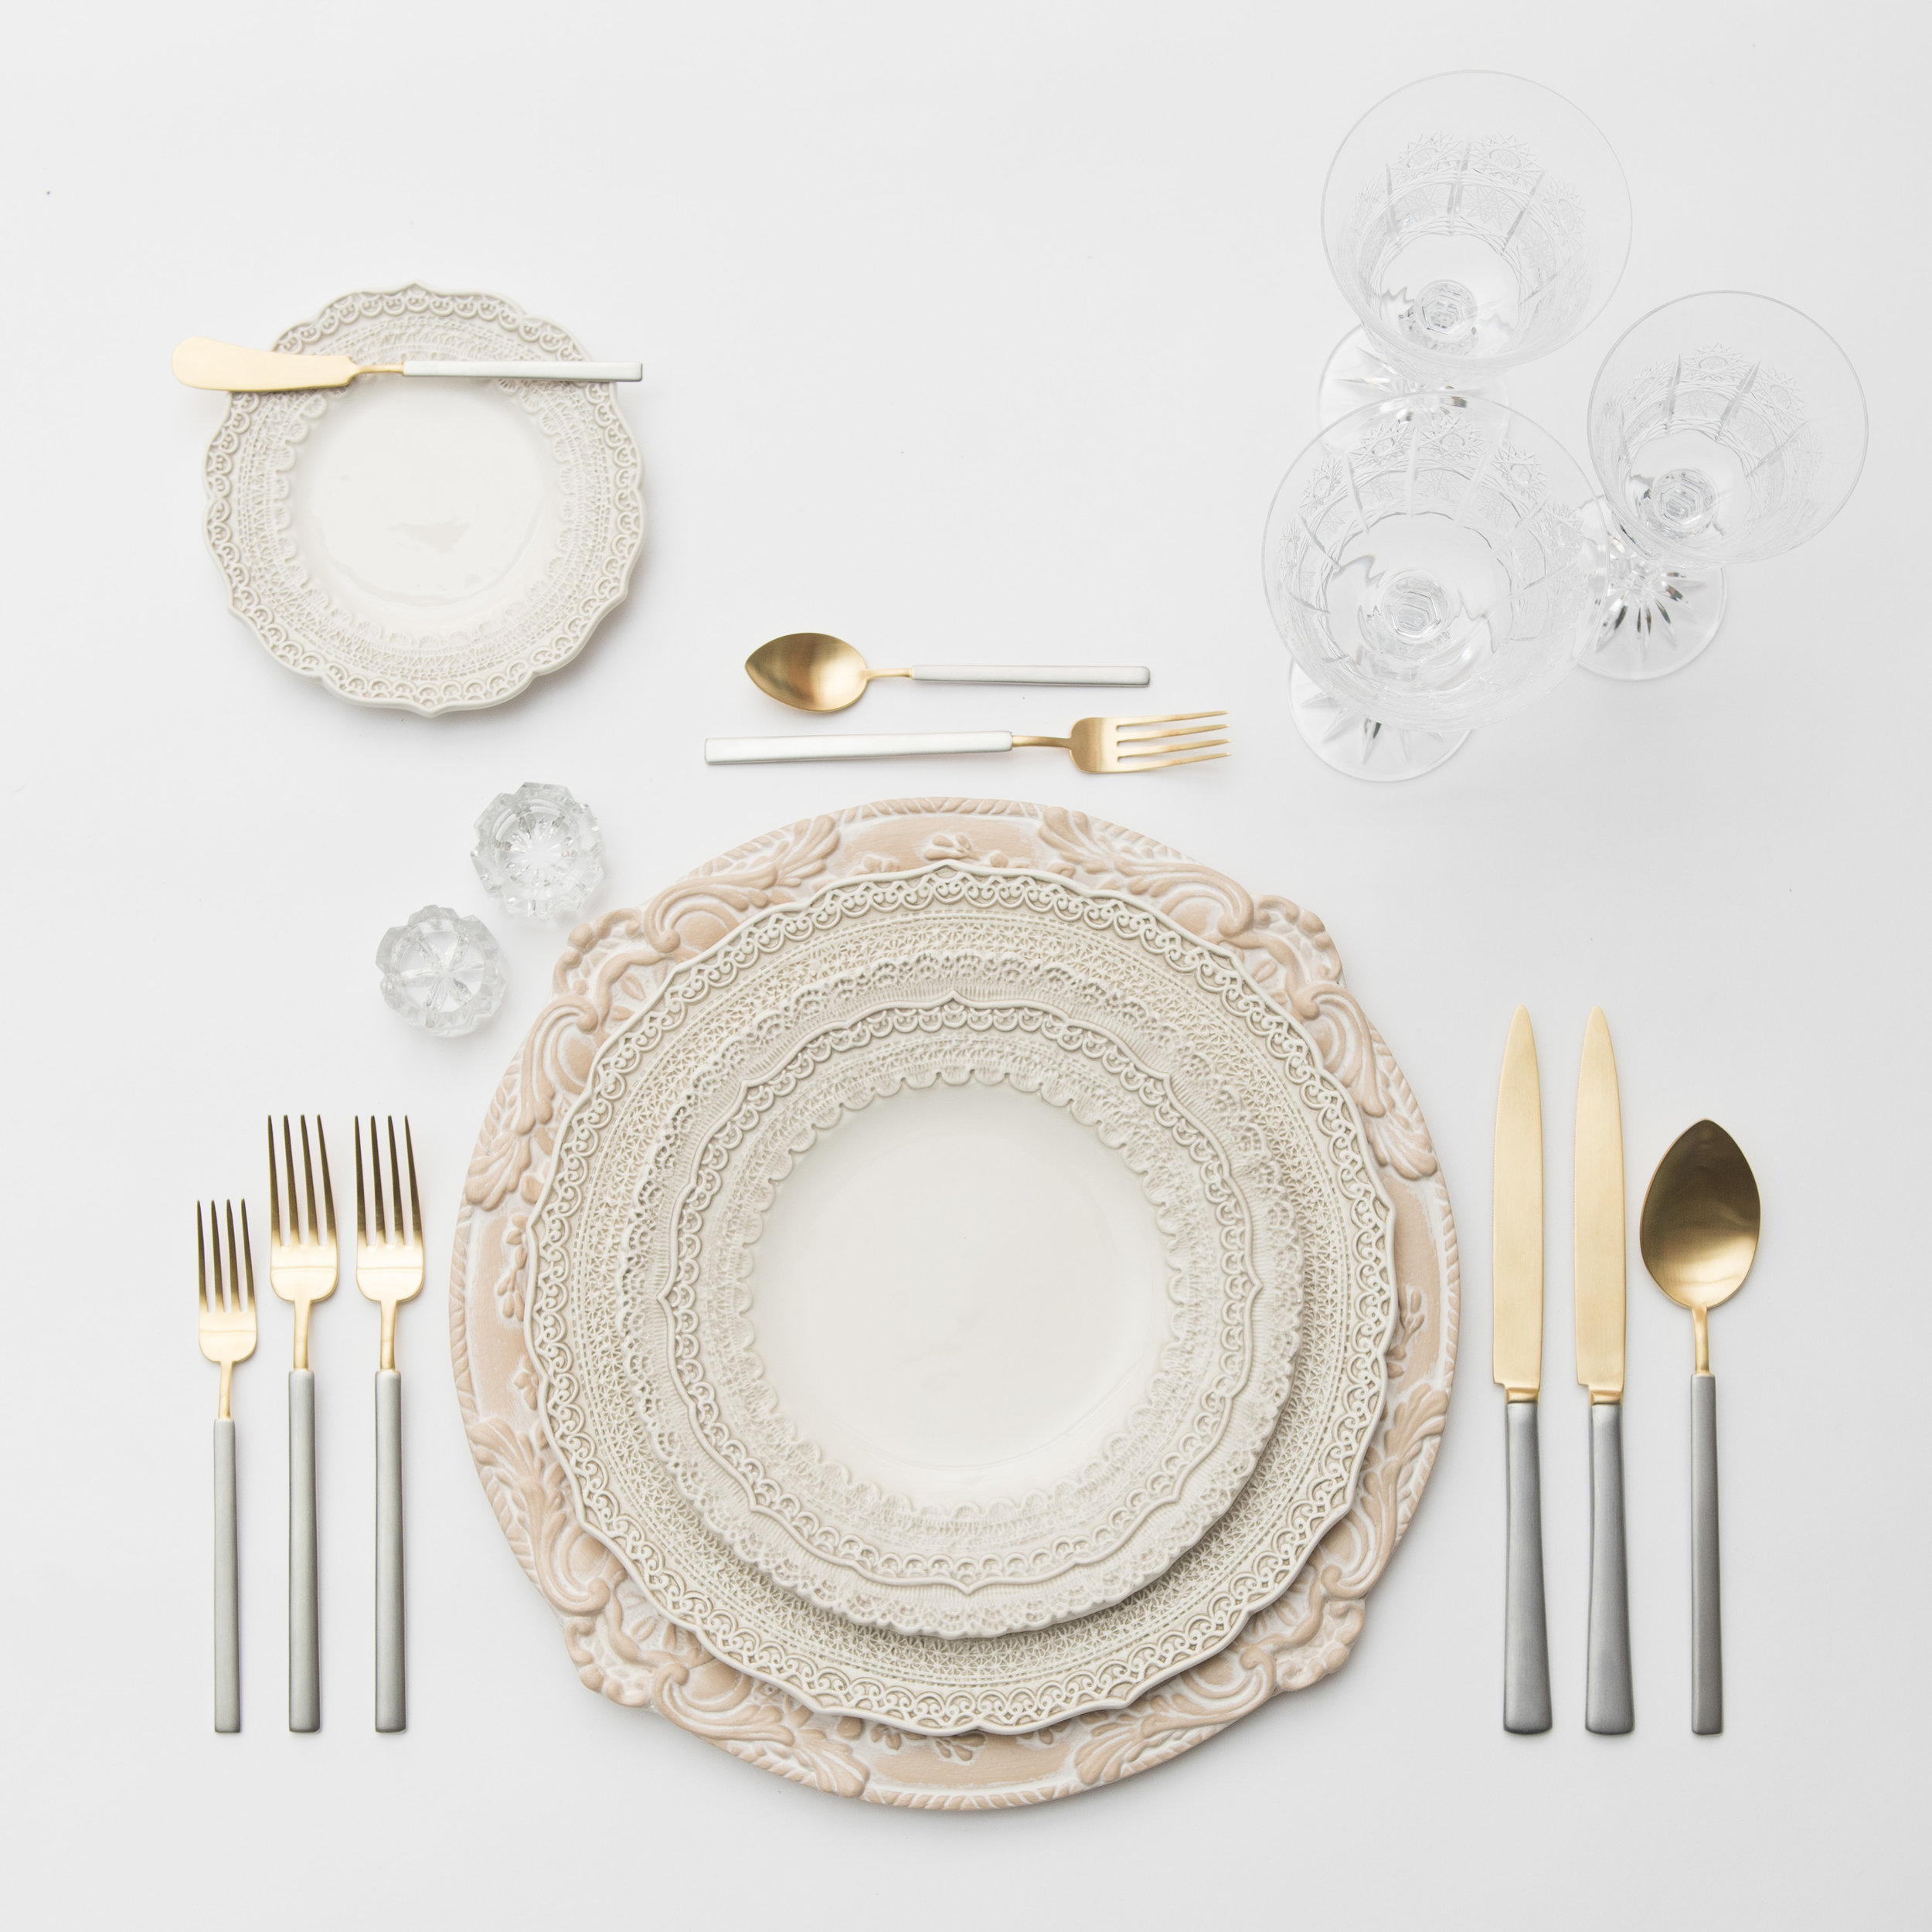 RENT: Verona Chargers in Terracotta + Lace Dinnerware in White + Axel Flatware in Matte 24k Gold/Silver + Czech Crystal Stemware + Antique Crystal Salt Cellars  SHOP: Verona Chargers in Terracotta